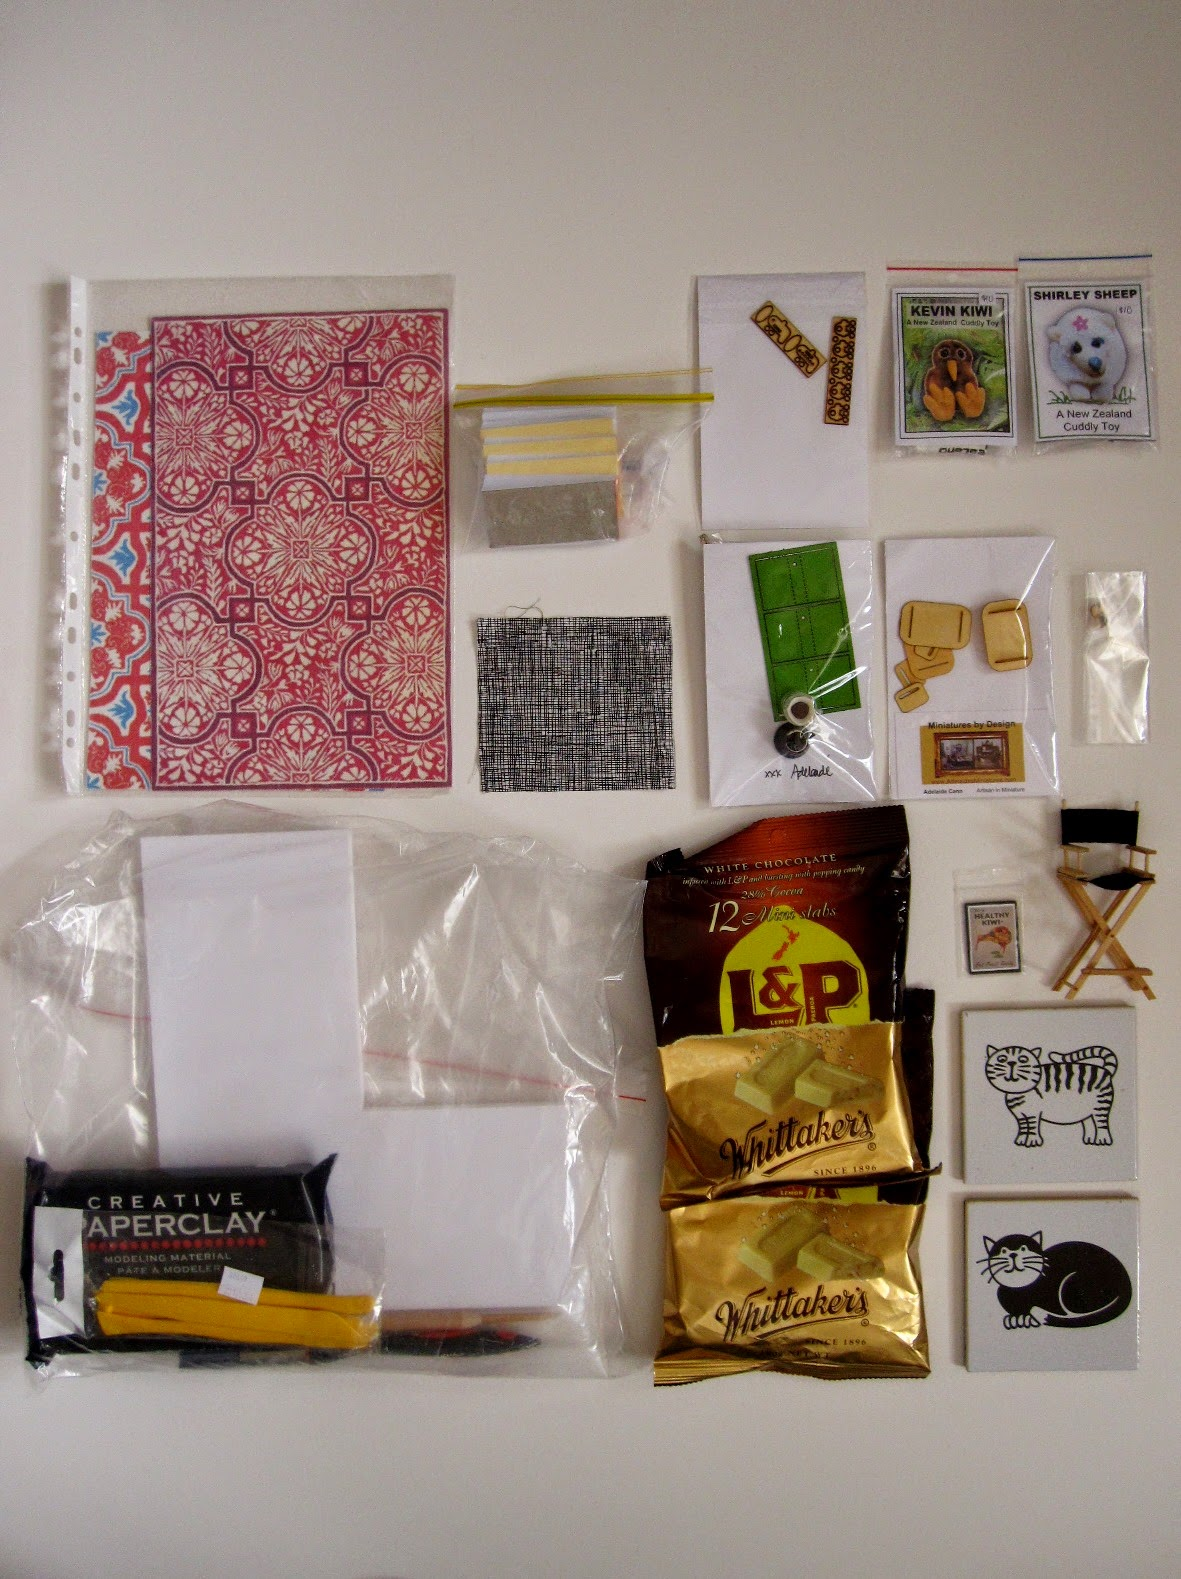 A selection of miniature items and bags of chocolate arranged neatly on a surface